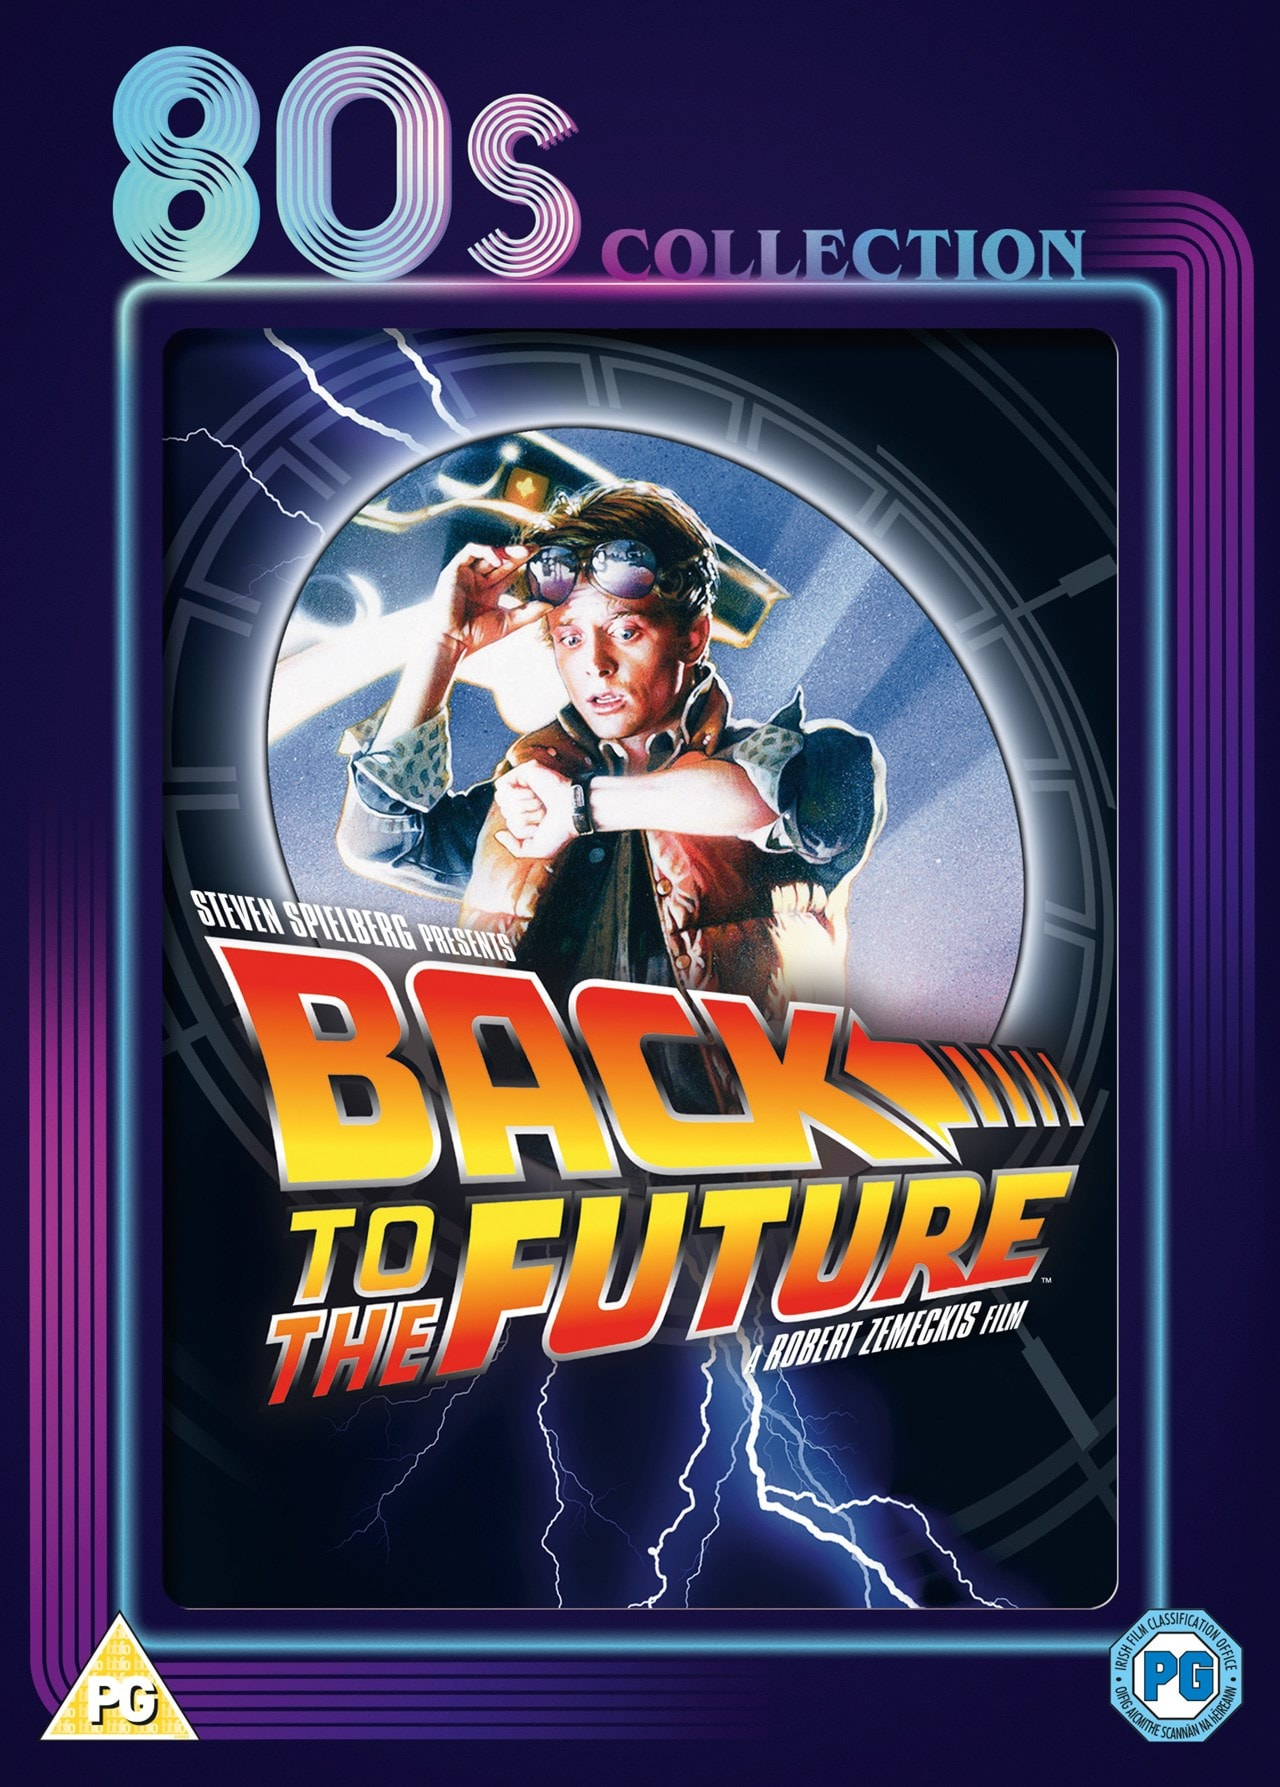 Back to the Future - 80s Collection - 1